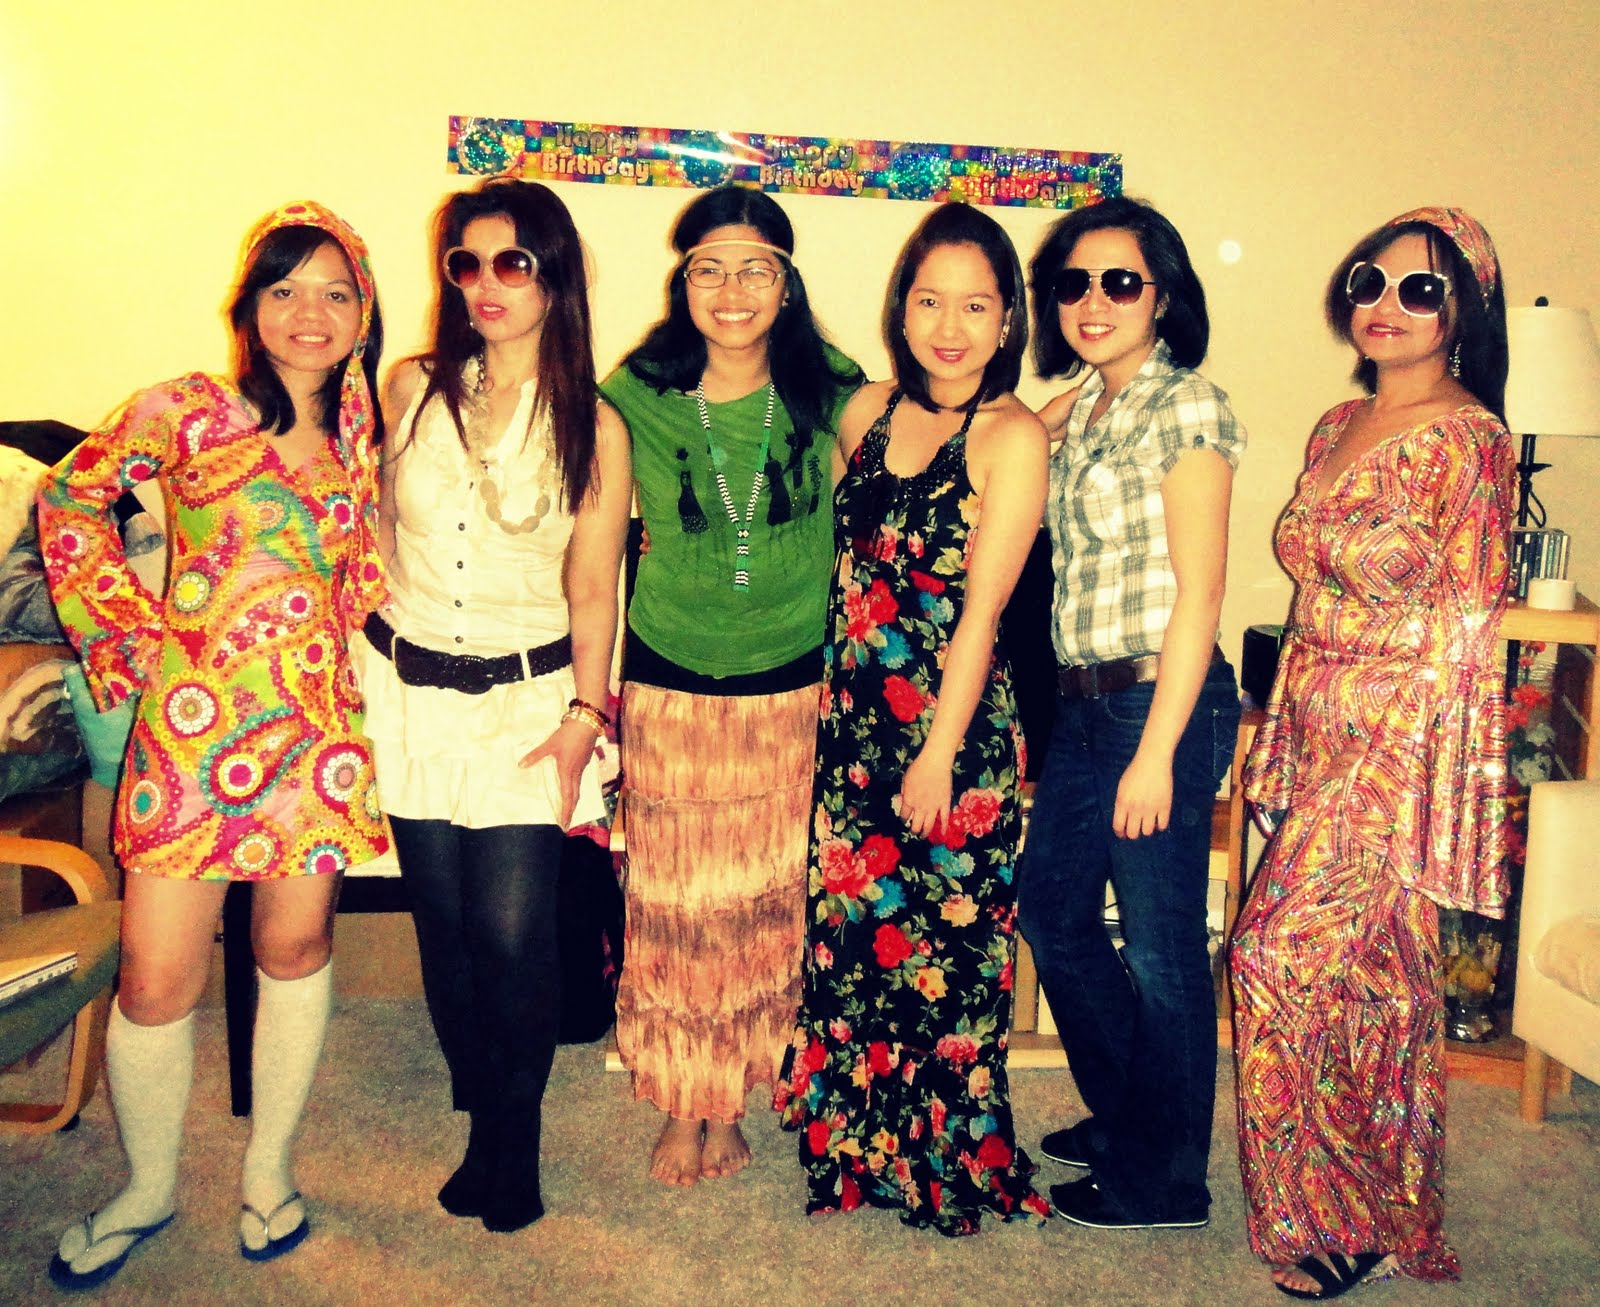 70s themed adult party